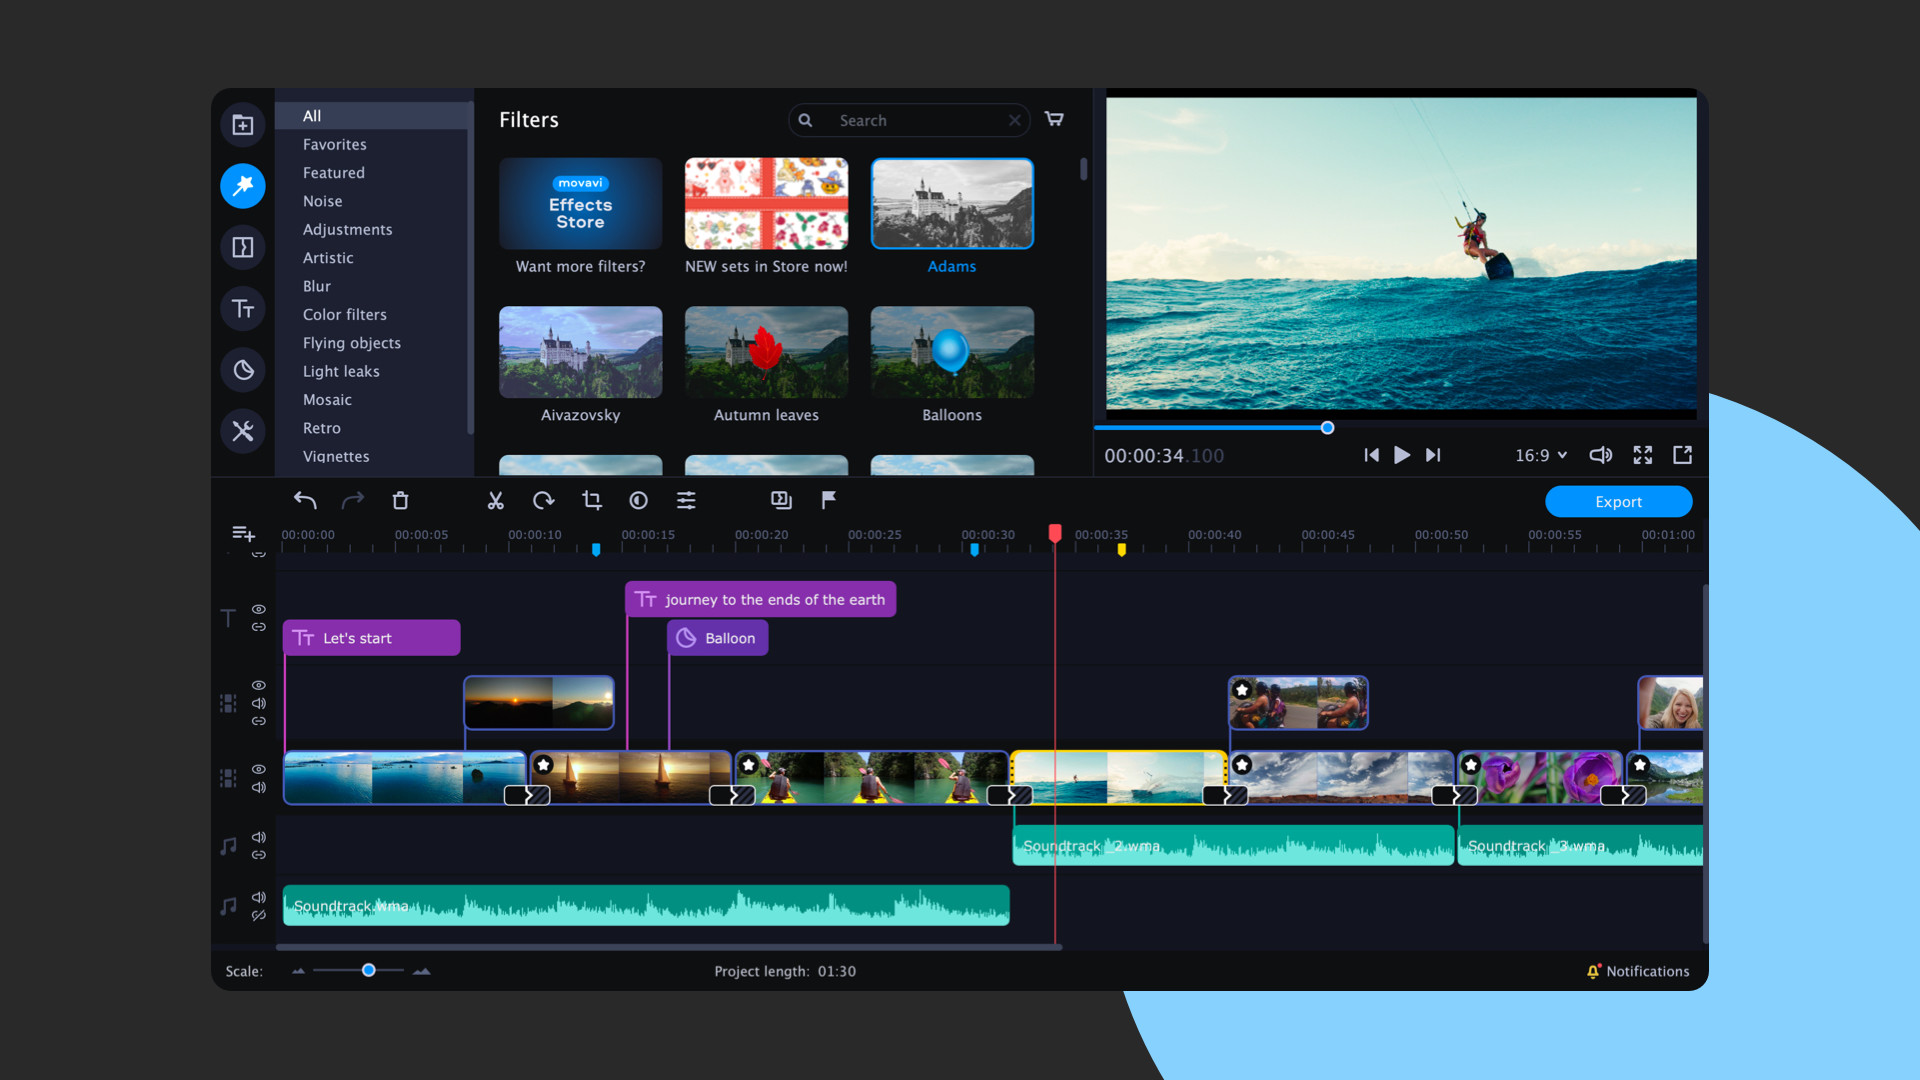 Movavi Video Suite 2021 Steam Edition -- Video Making Software - Video Editor, Screen Recorder and Video Converter screenshot